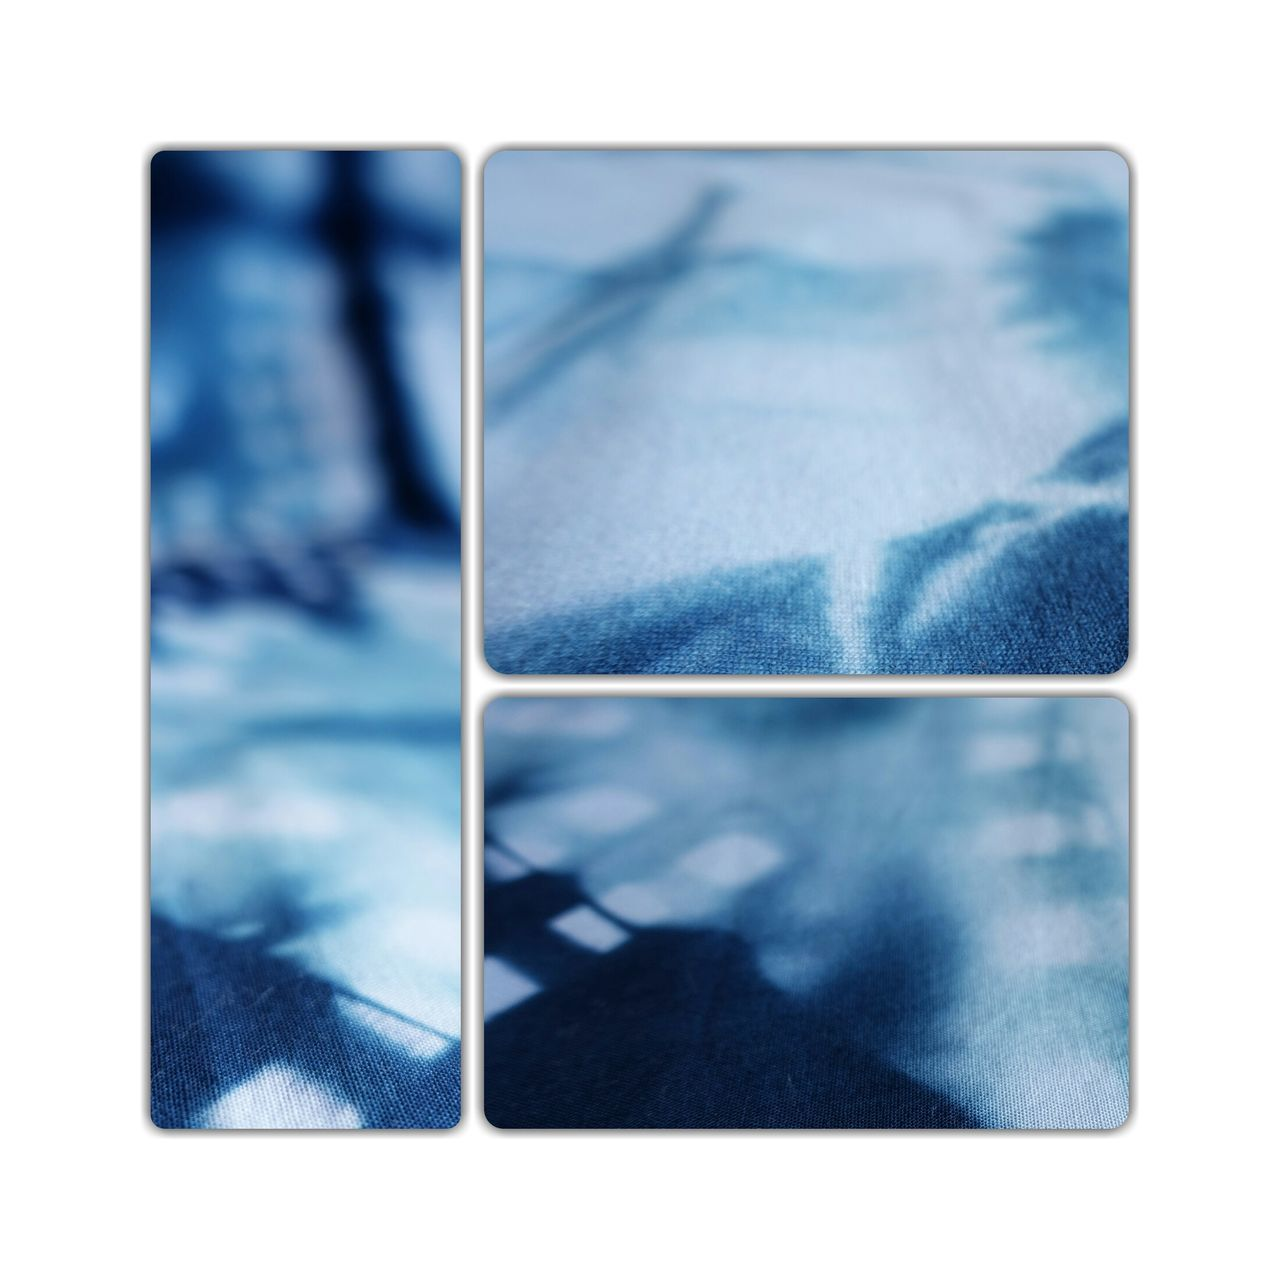 White & Blue 😀 Shibori White Background No People Close-up Day Mixed Patterns Muster Mix DIY Cotton Cloth Large Group Of Objects Collage Patterns & Textures Textures And Surfaces Textured  Trying New Things At Home Cut And Paste